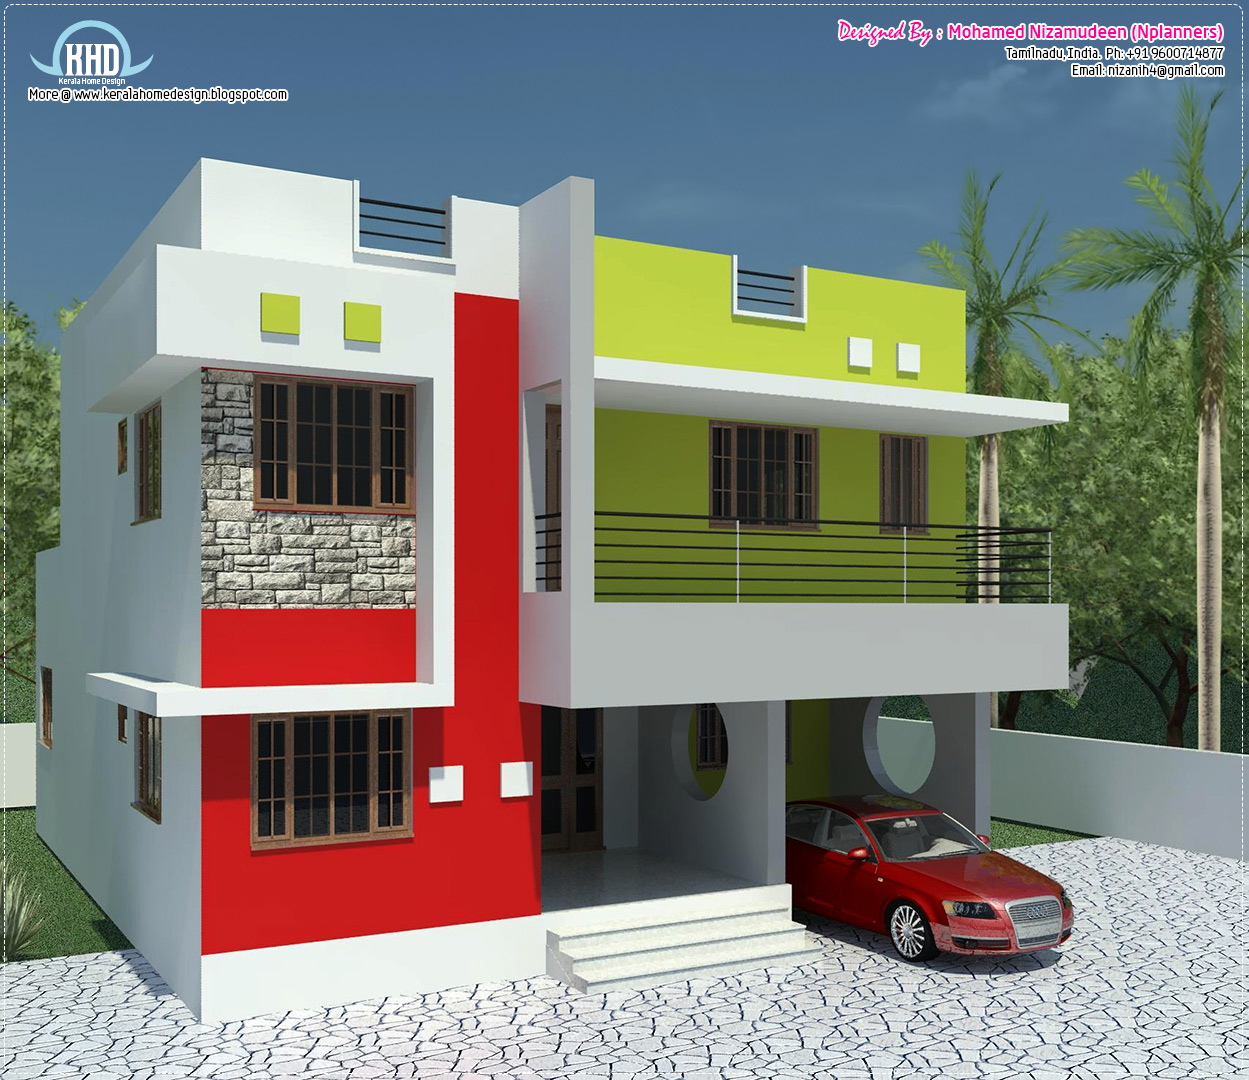 Kerala home design and floor plans 1484 south for House plans for 1200 sq ft in tamilnadu